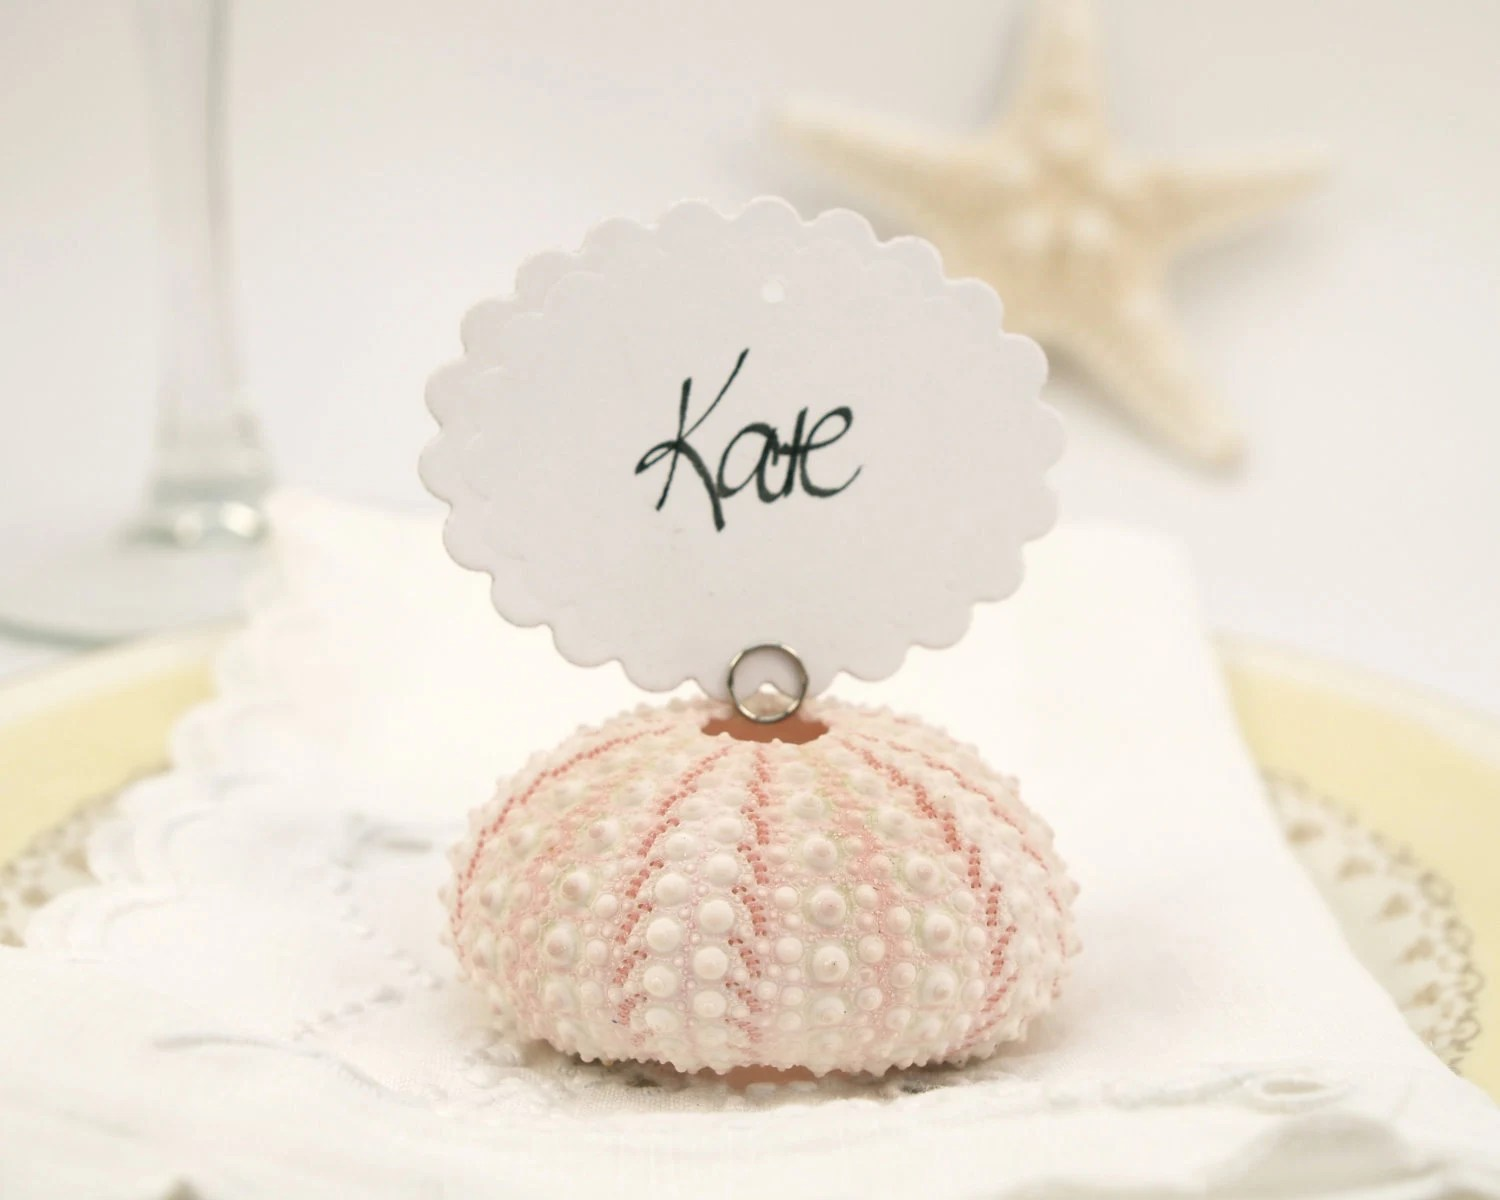 Beach Wedding Escort Cards, 10 Shell Guest Name Place Cards for your Wedding Table Decoration, Pink Urchin Shabby Chic, Sea - FairyfolkWeddings